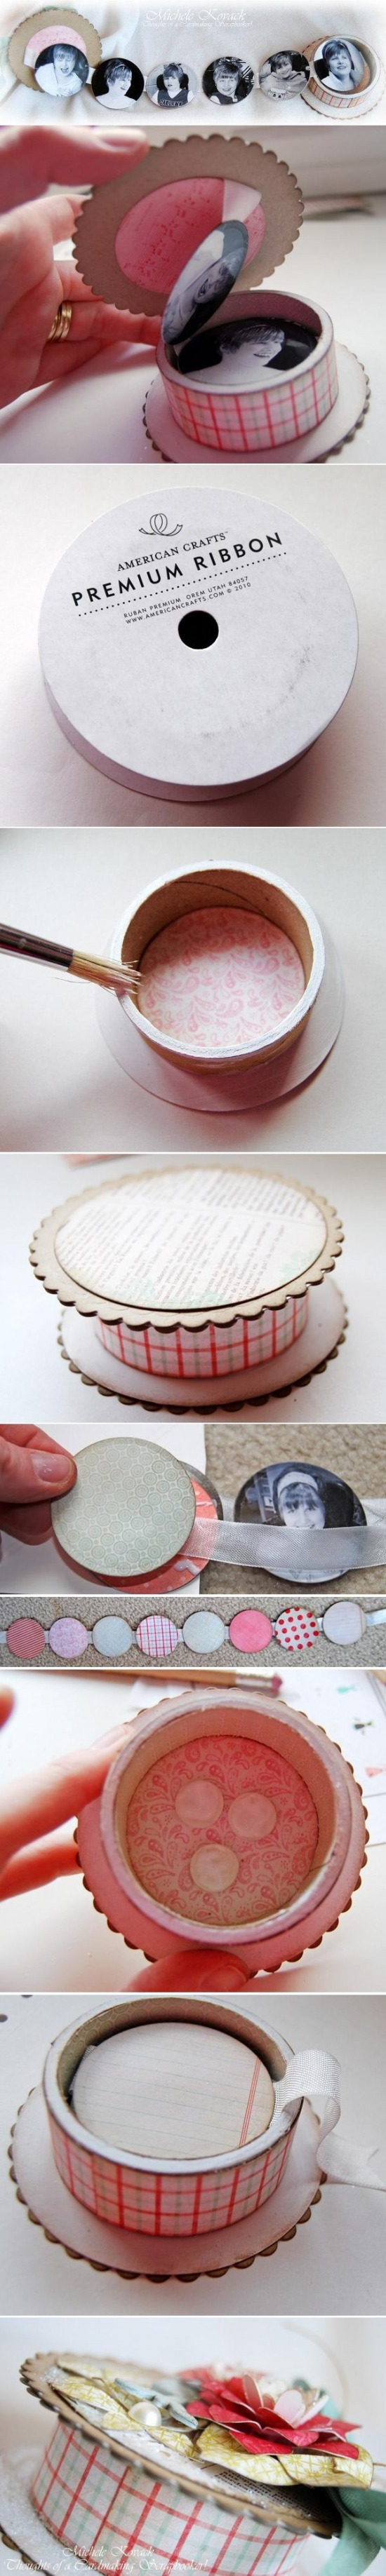 DIY-Creative-Photo-Album.jpg